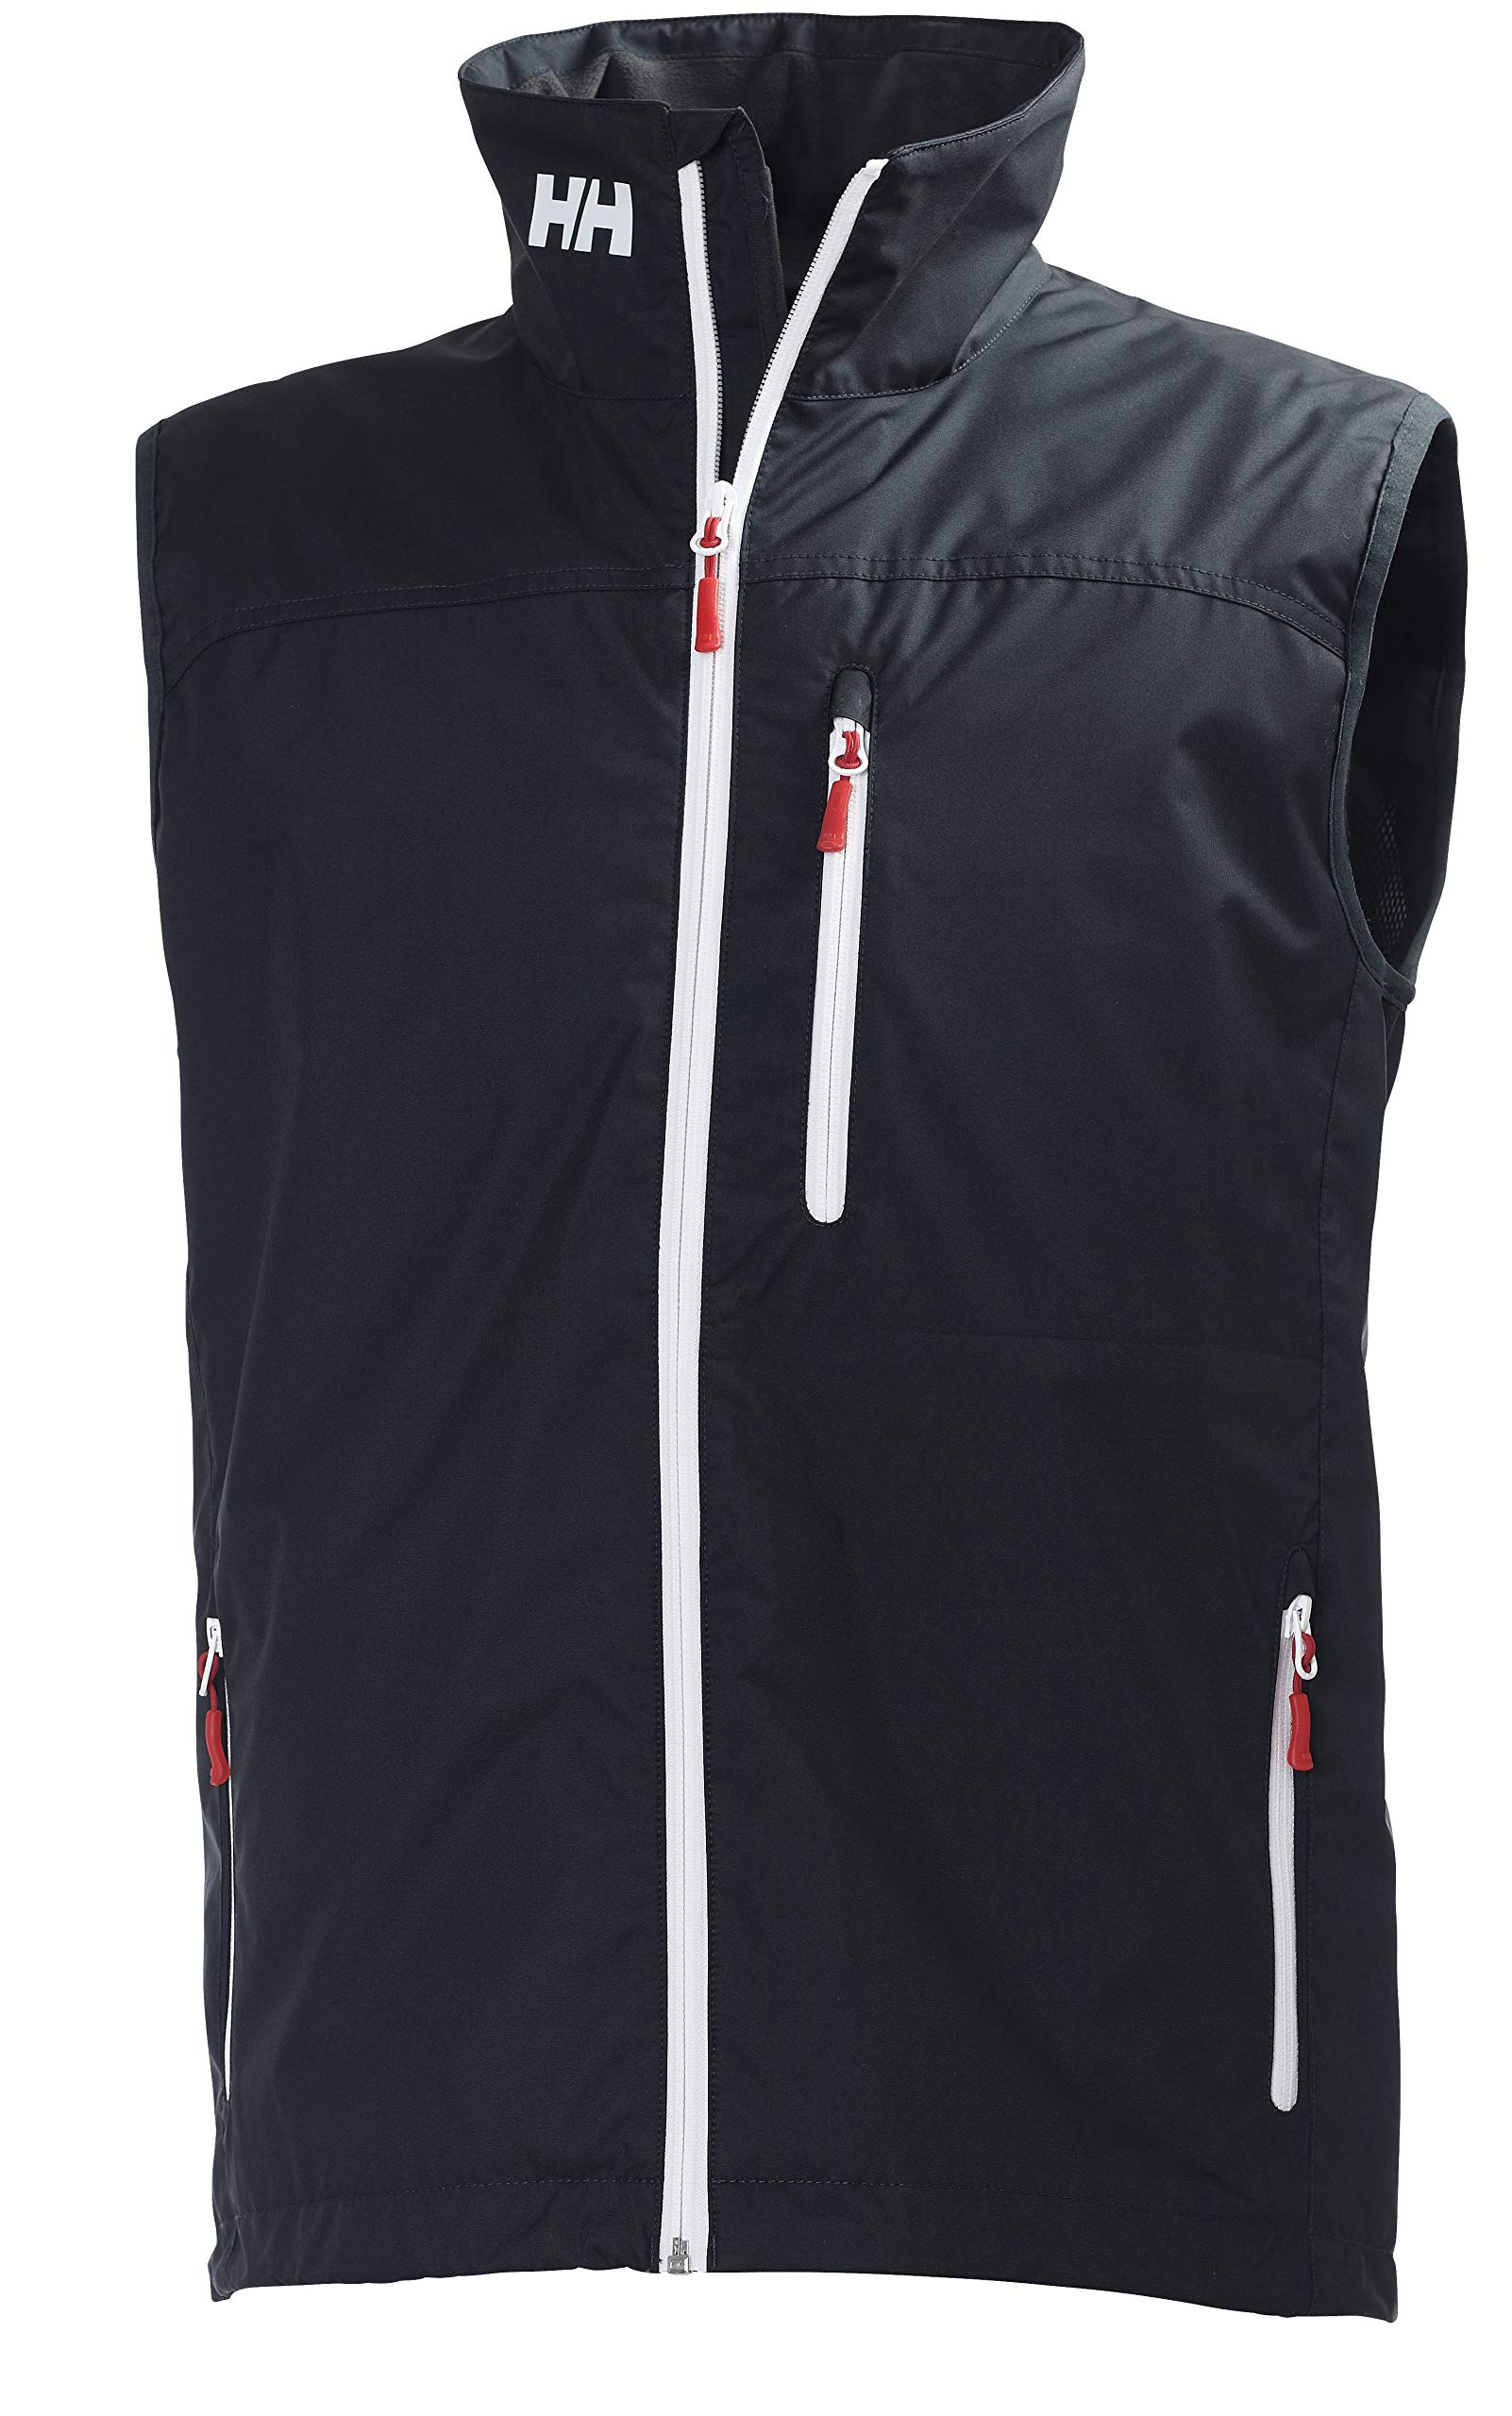 Helly Hansen Men's Crew Vest Waterproof, Windproof, & Breathable Sailing Vest, 597 Navy, X-Large by Helly Hansen